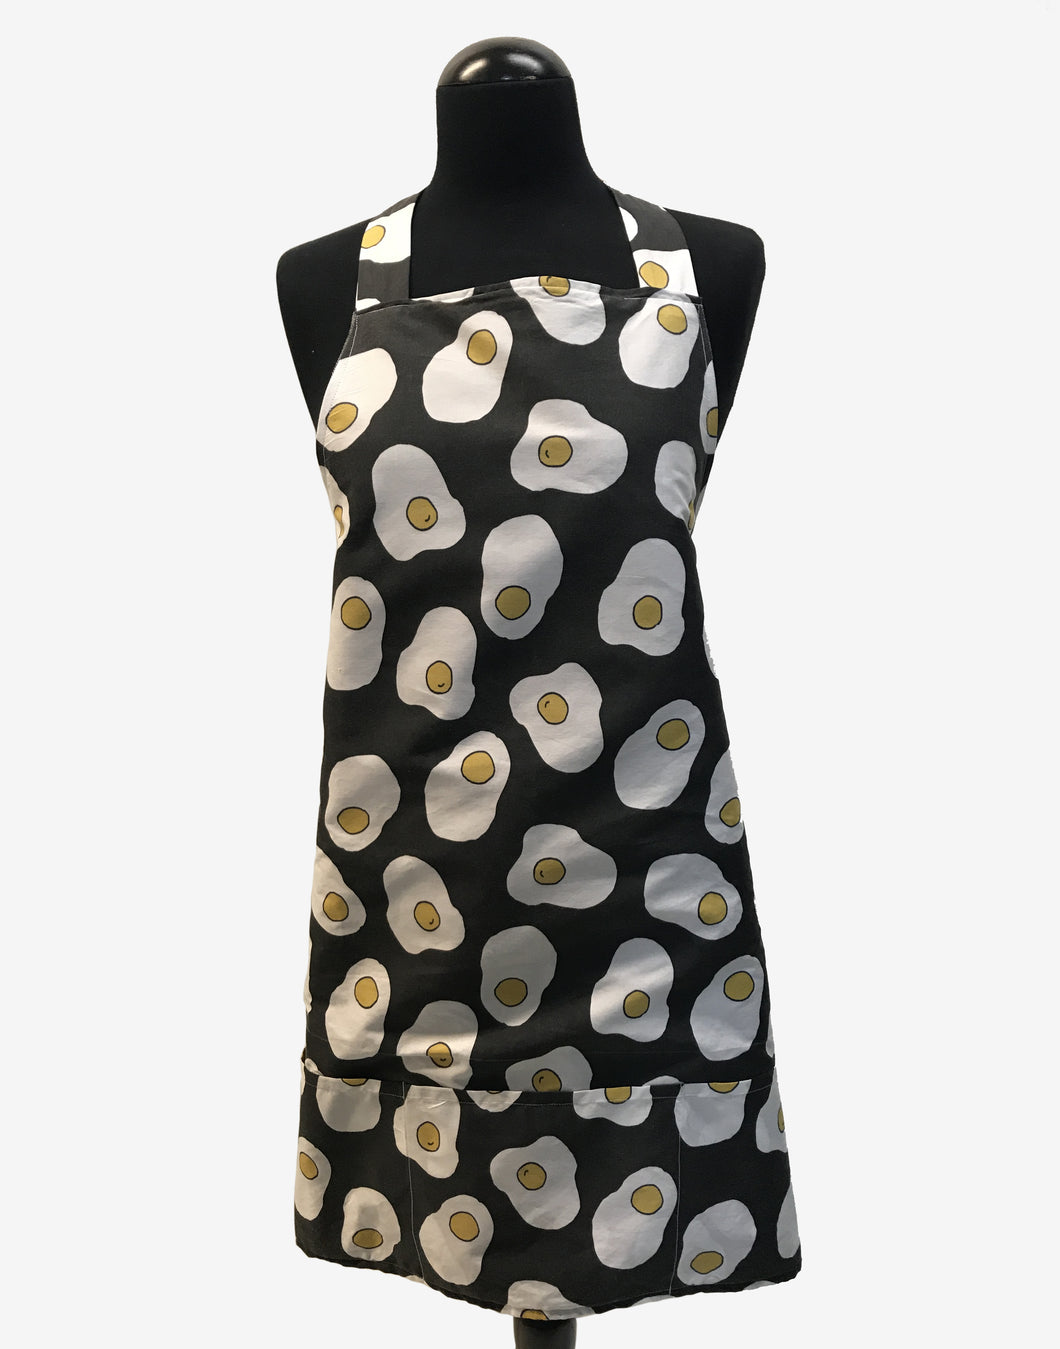 Eggs Apron - InRugCo Studio & Gift Shop